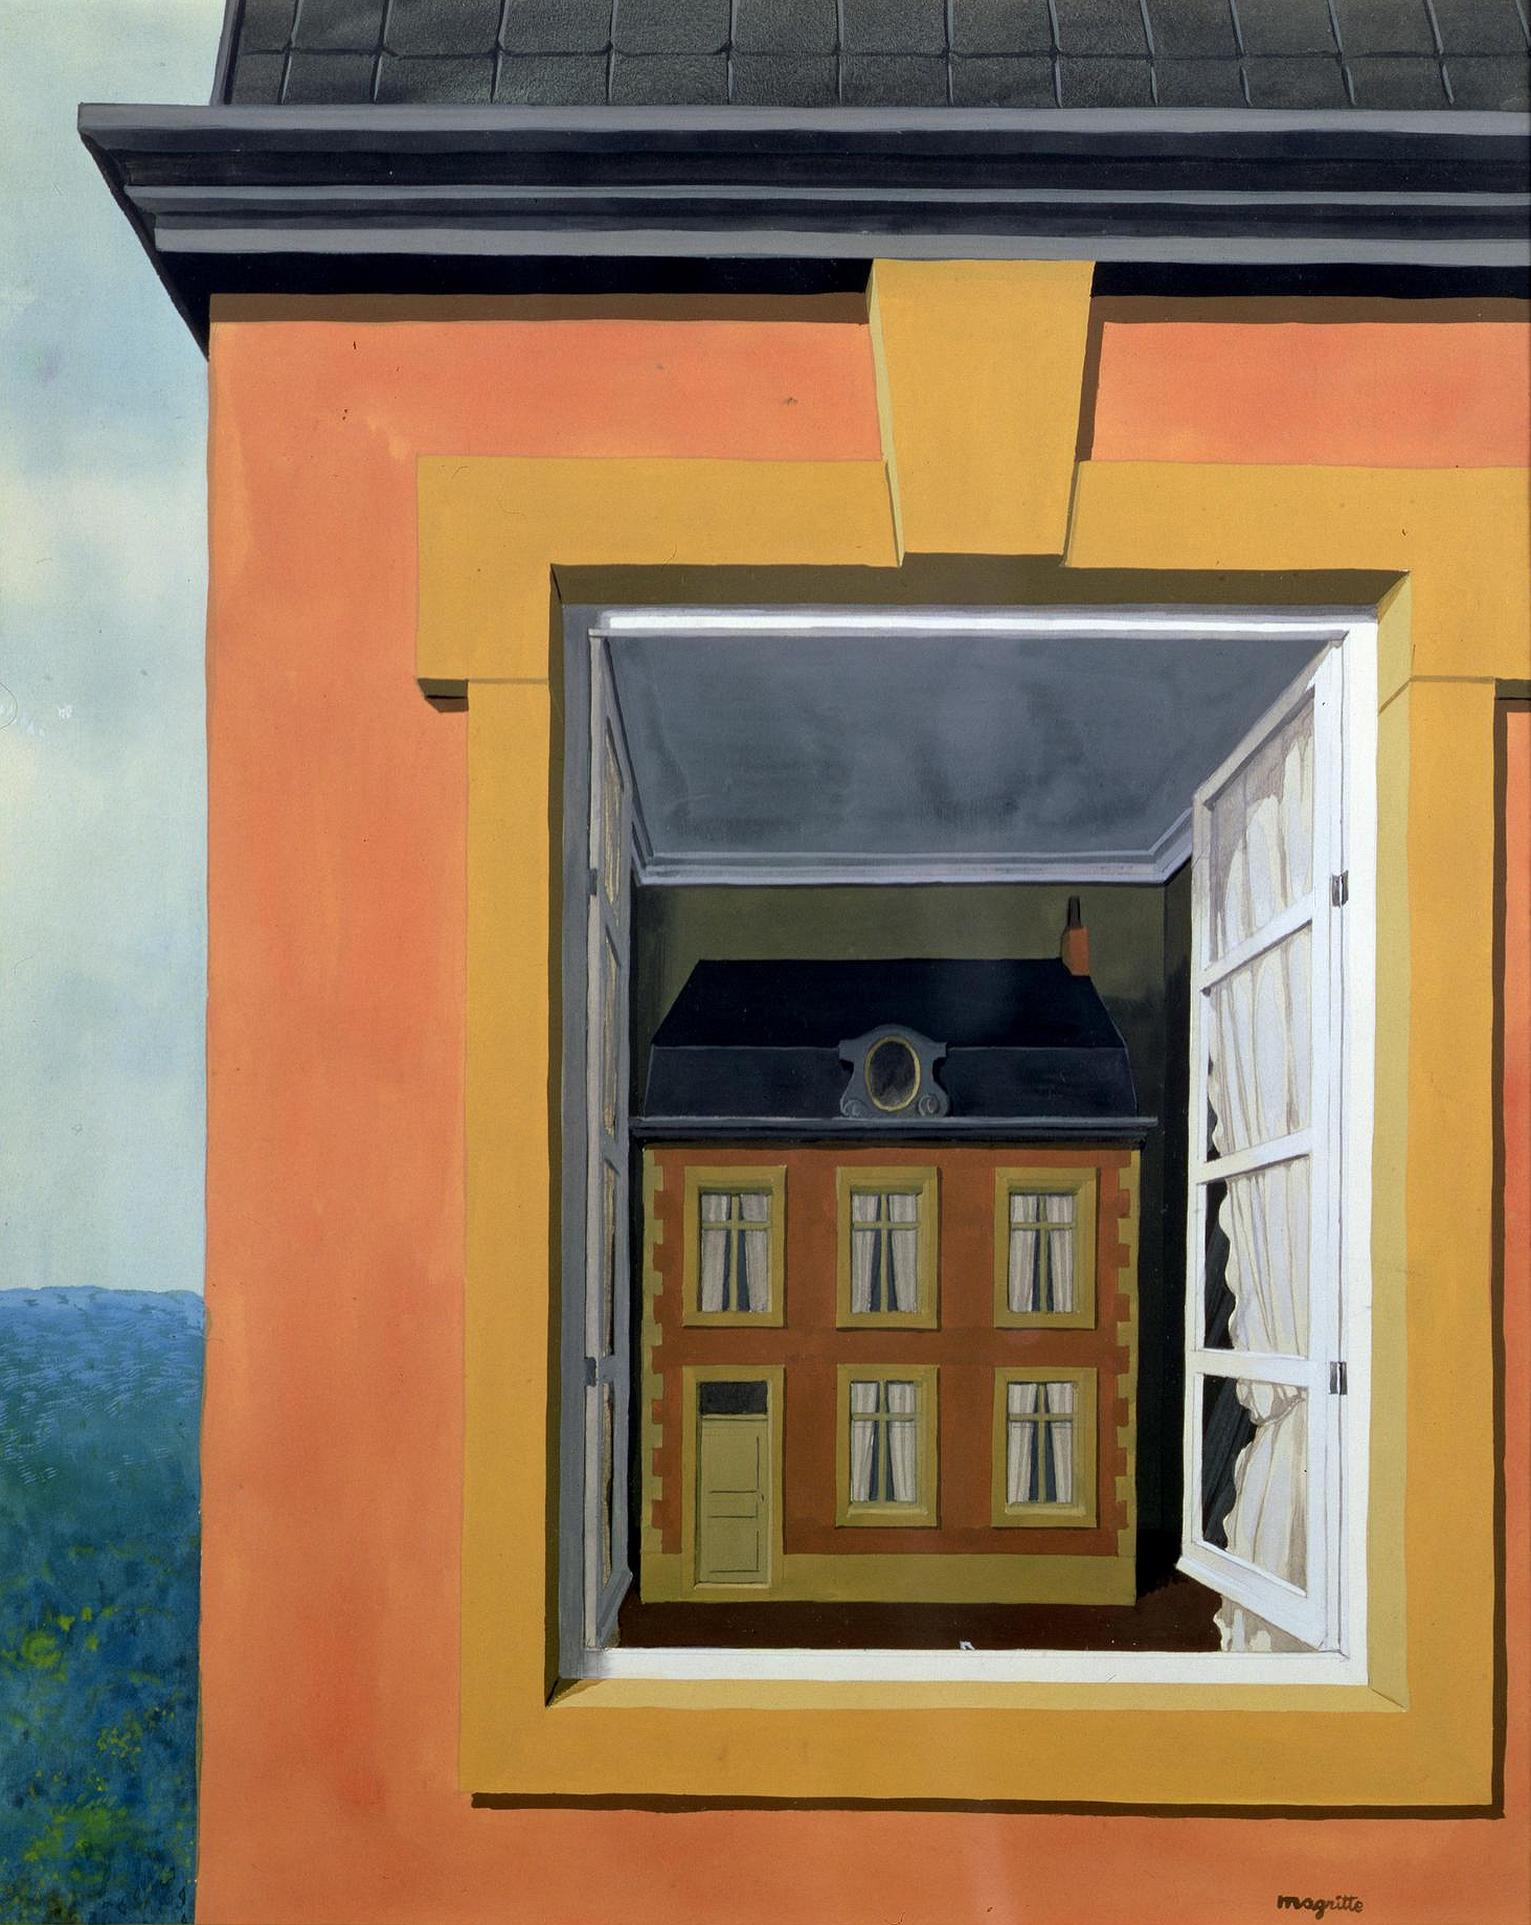 rene magritte essay The belgian surrealist rené magritte this video essay explores the treachery of images in the context of how rené magritte turned philosophy into painting.